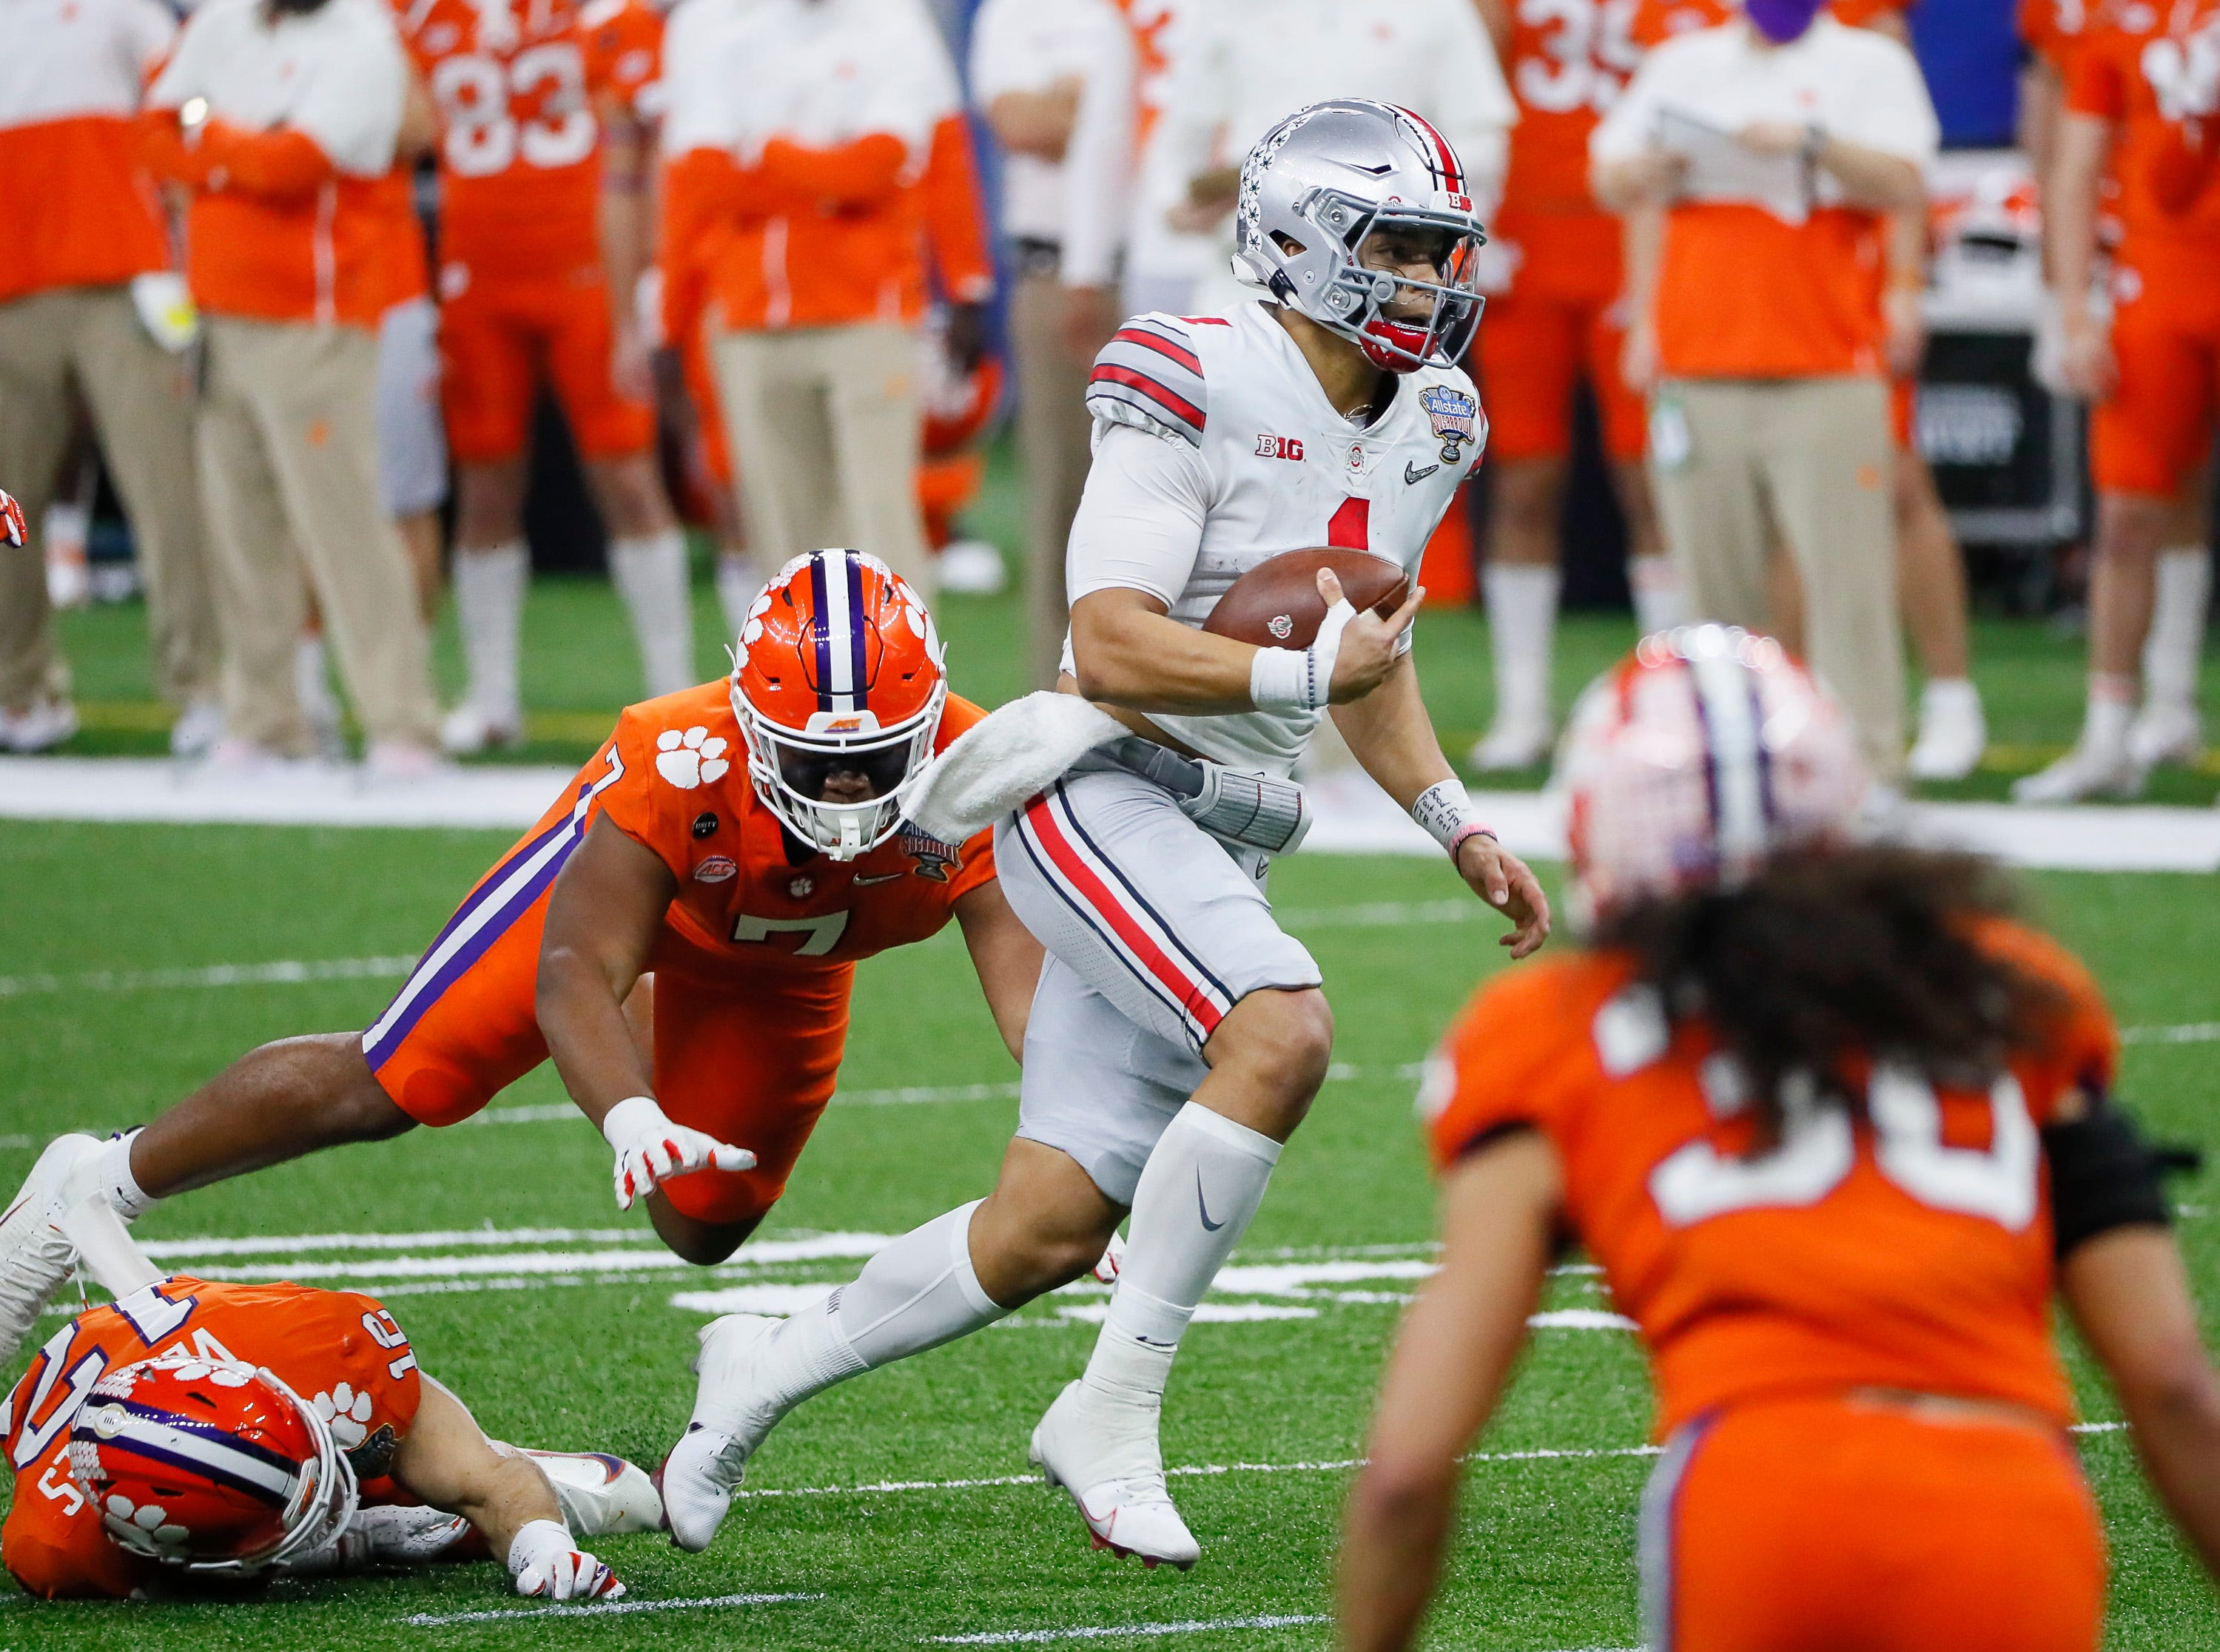 Ohio State handles Clemson in college football semifinal at Sugar Bowl